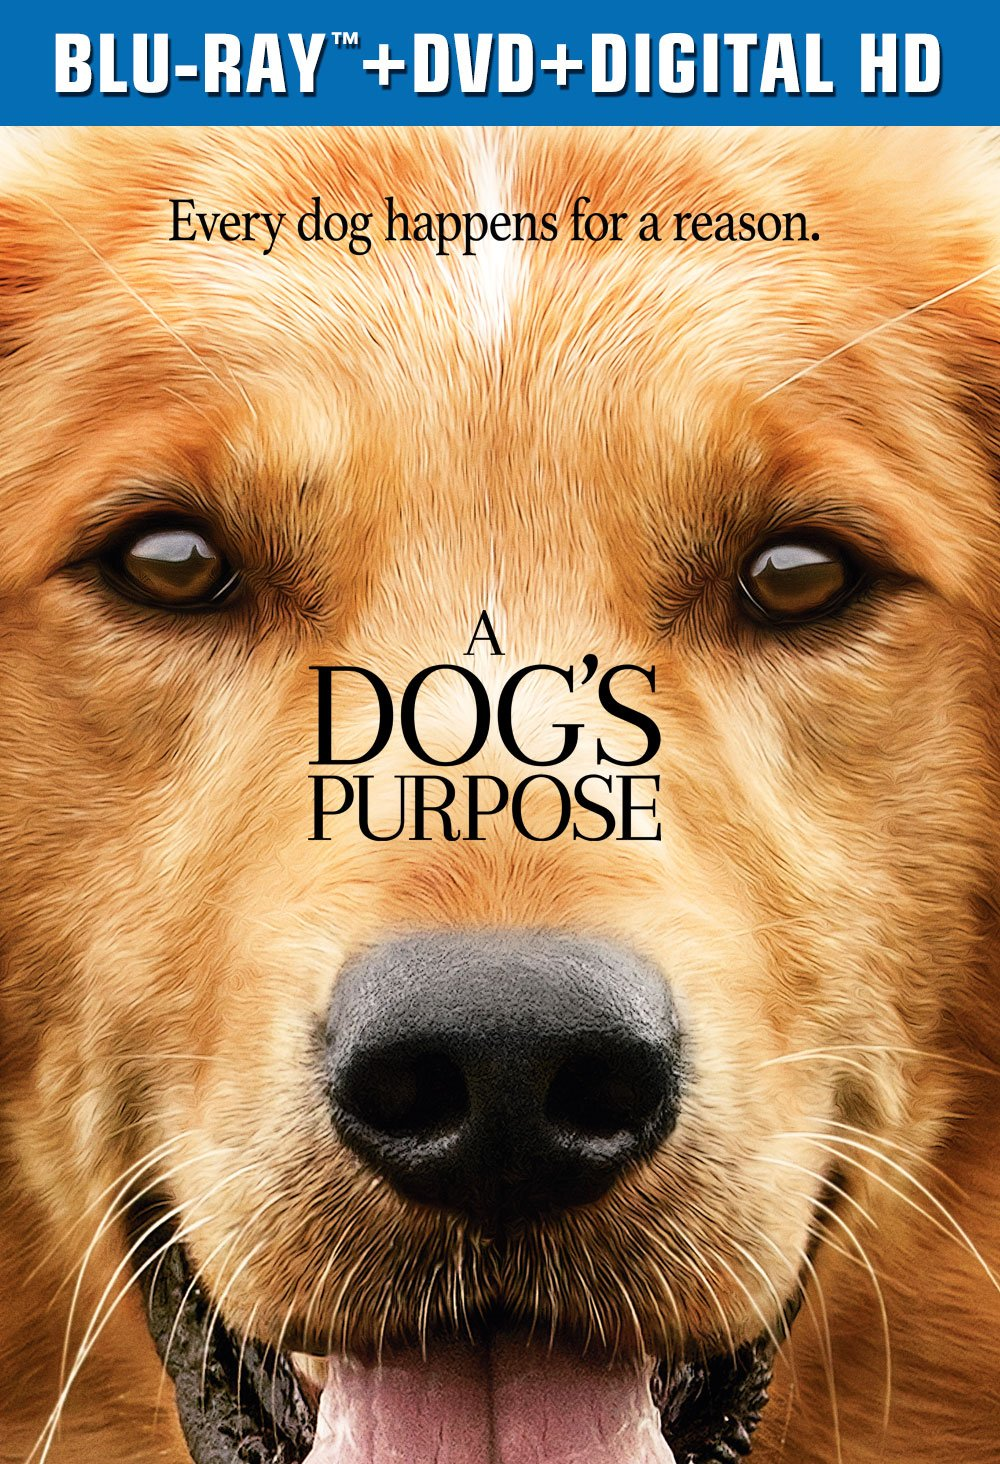 Is A Dog S Purpose On Netflix